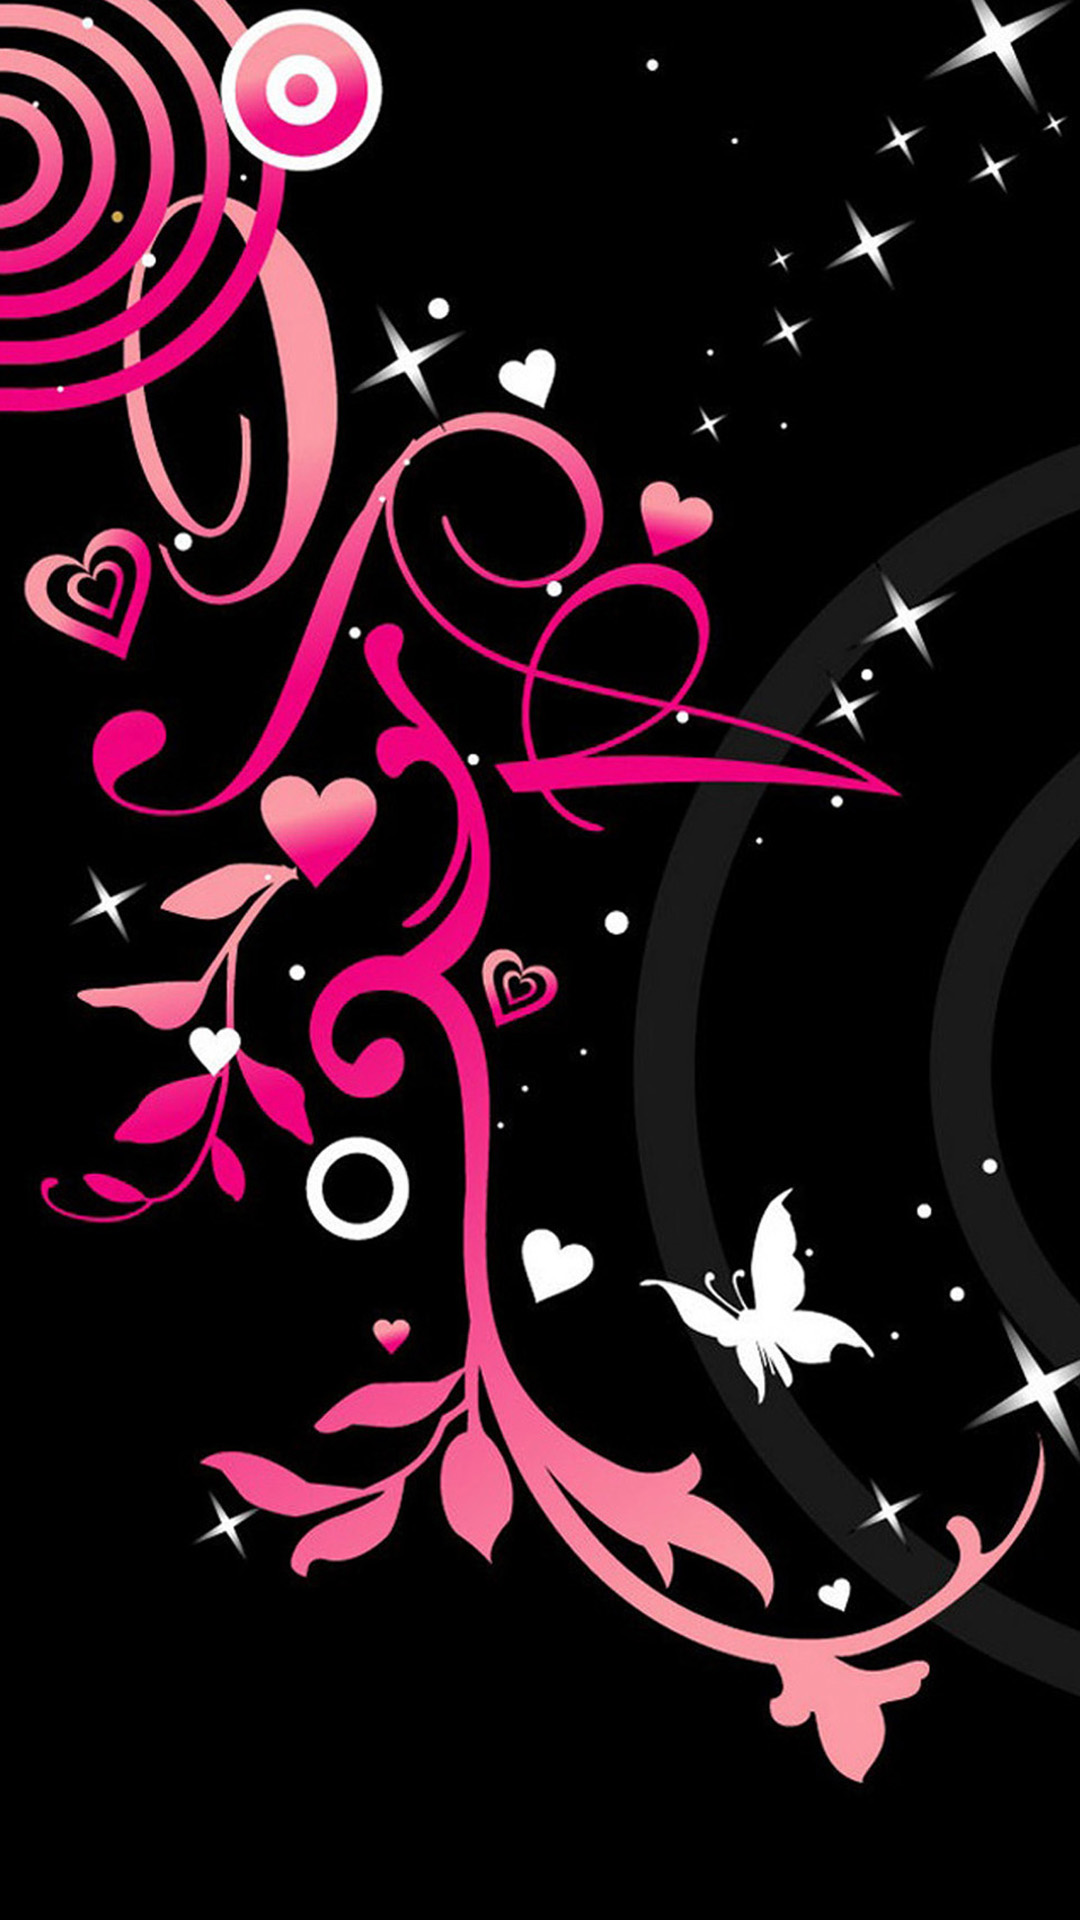 Download love wallpapers for iphone gallery - Lovely wicked iphone wallpaper ...